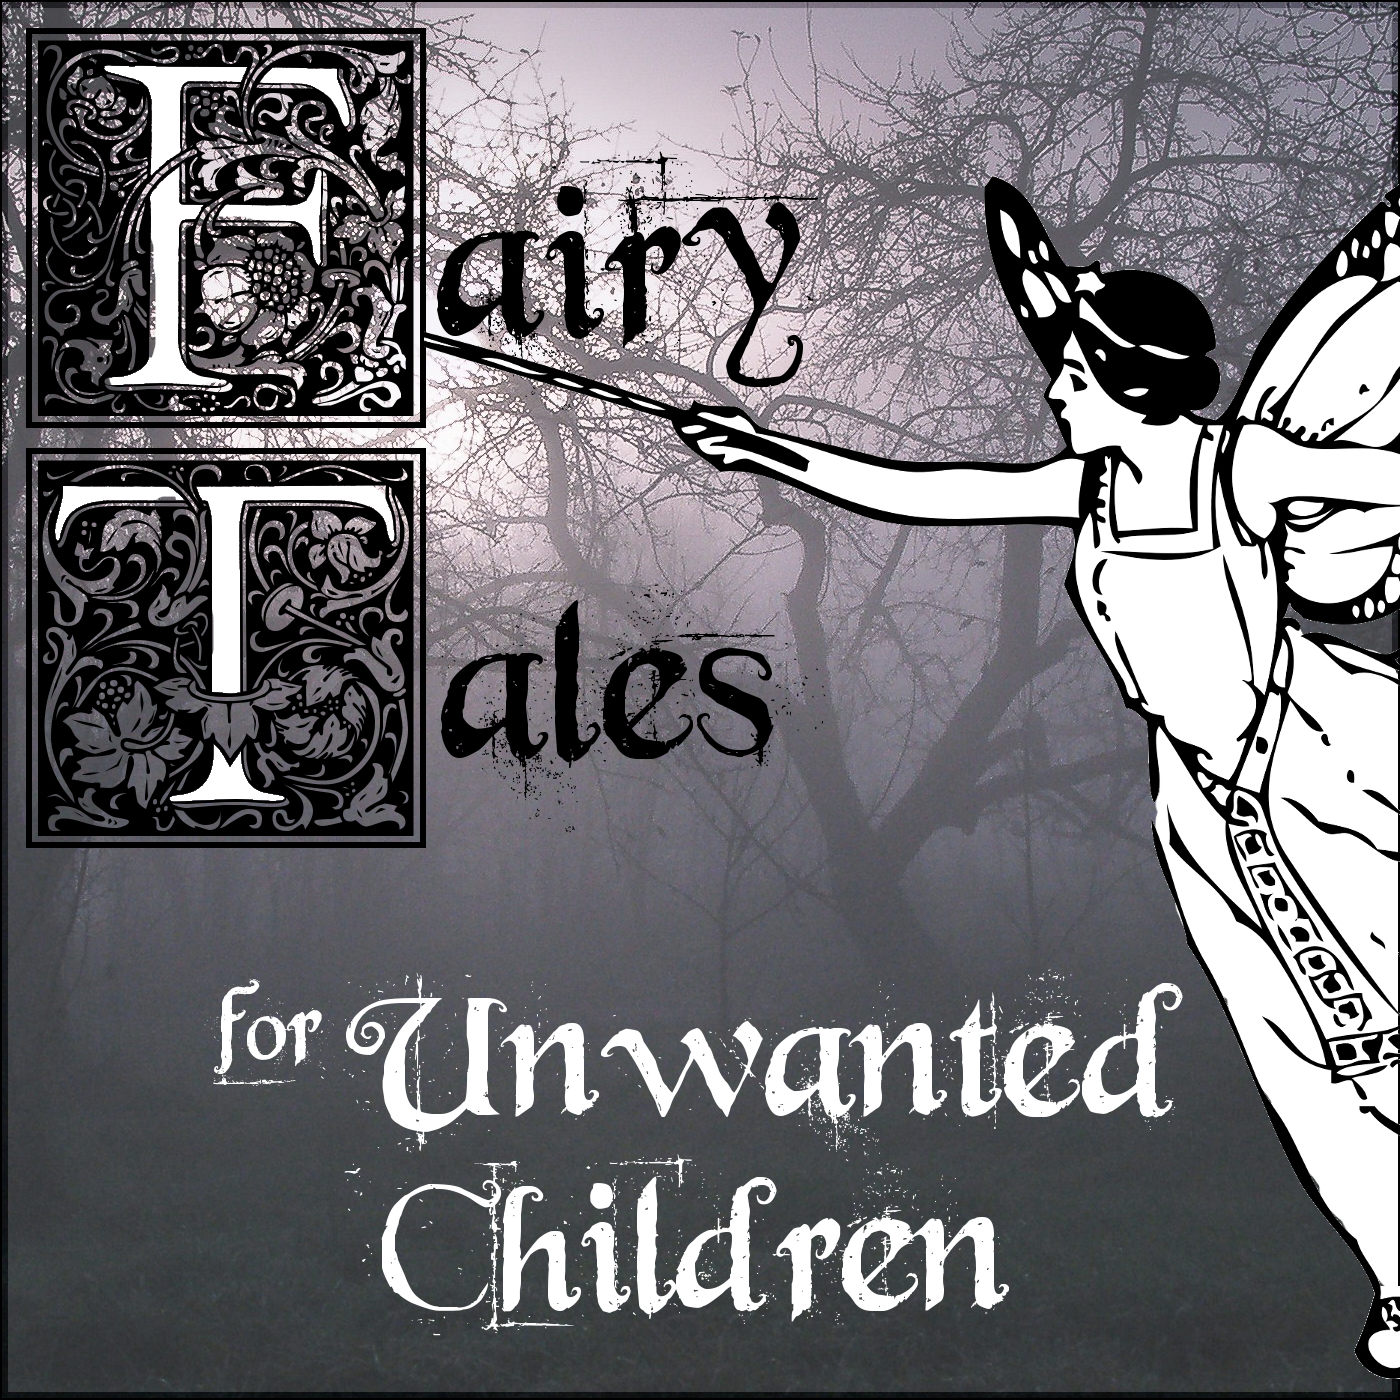 Listen to Scott Thrower on Fairy Tales for Unwanted Children